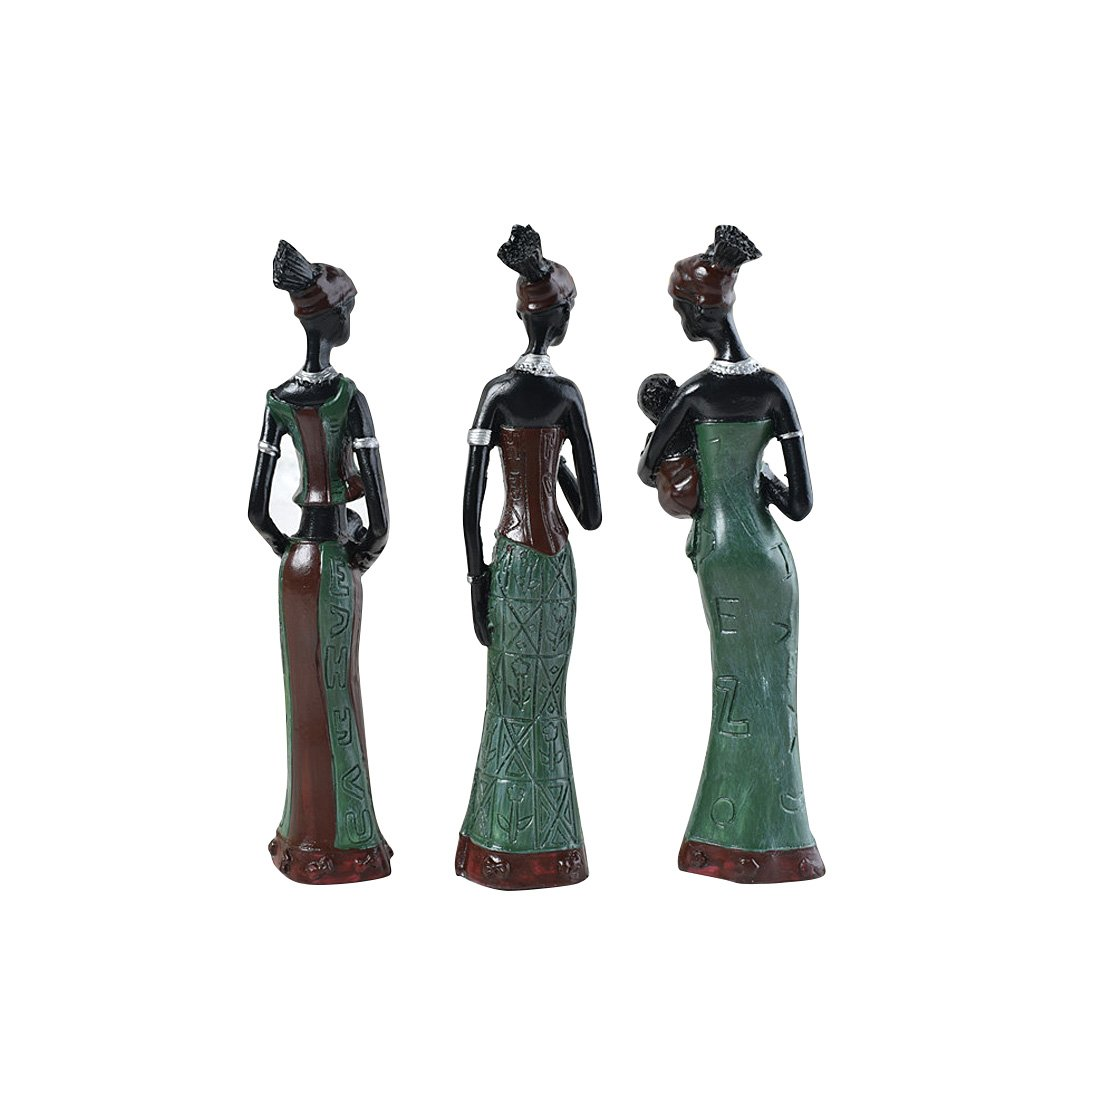 TBW African Tribal Women Collectible Figurines for Mother's Gifts,Green,Pack of 3 by TBW (Image #3)